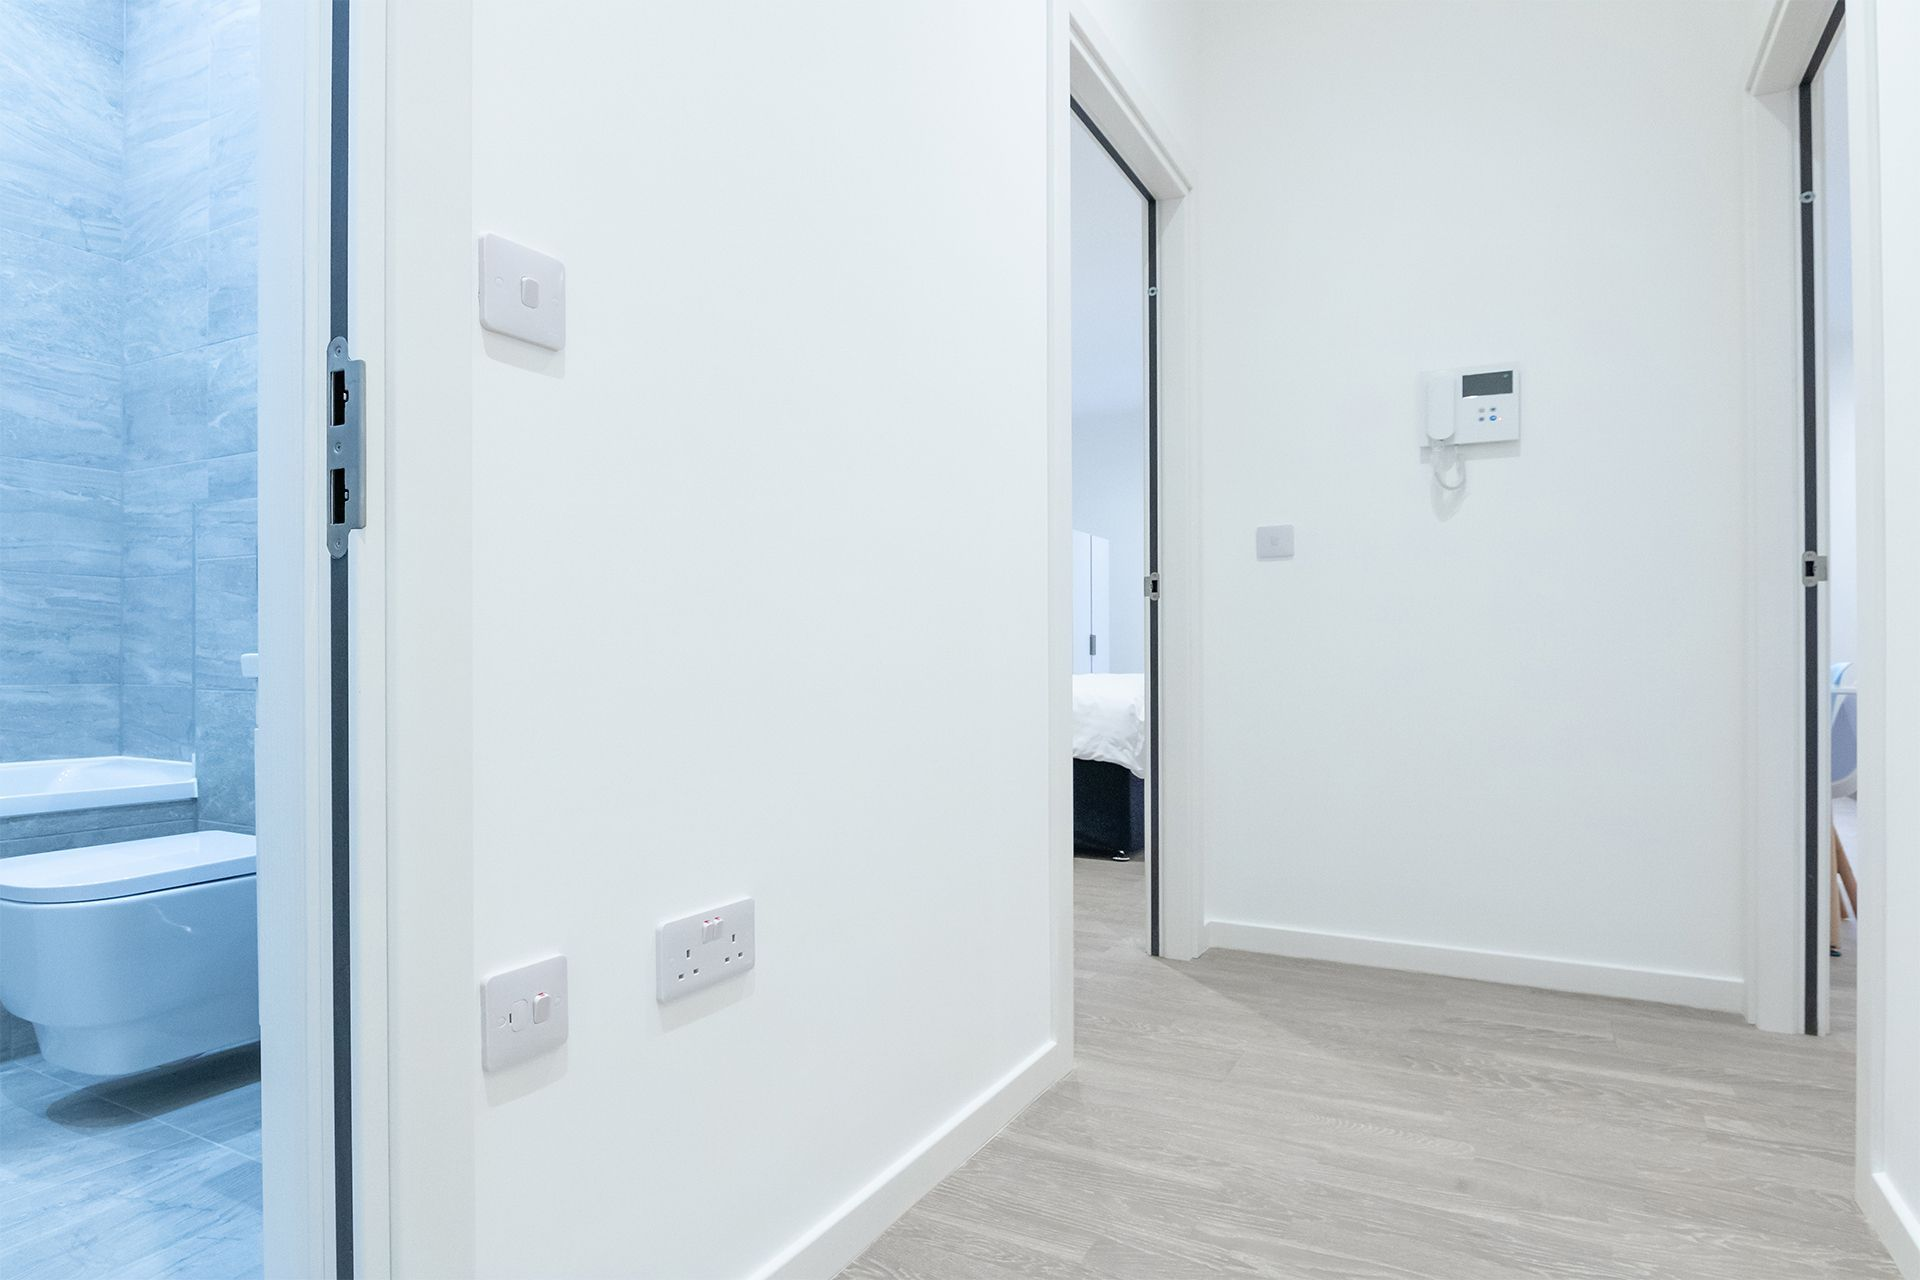 1 Bedroom apartment to rent in London VIL-SA-0019